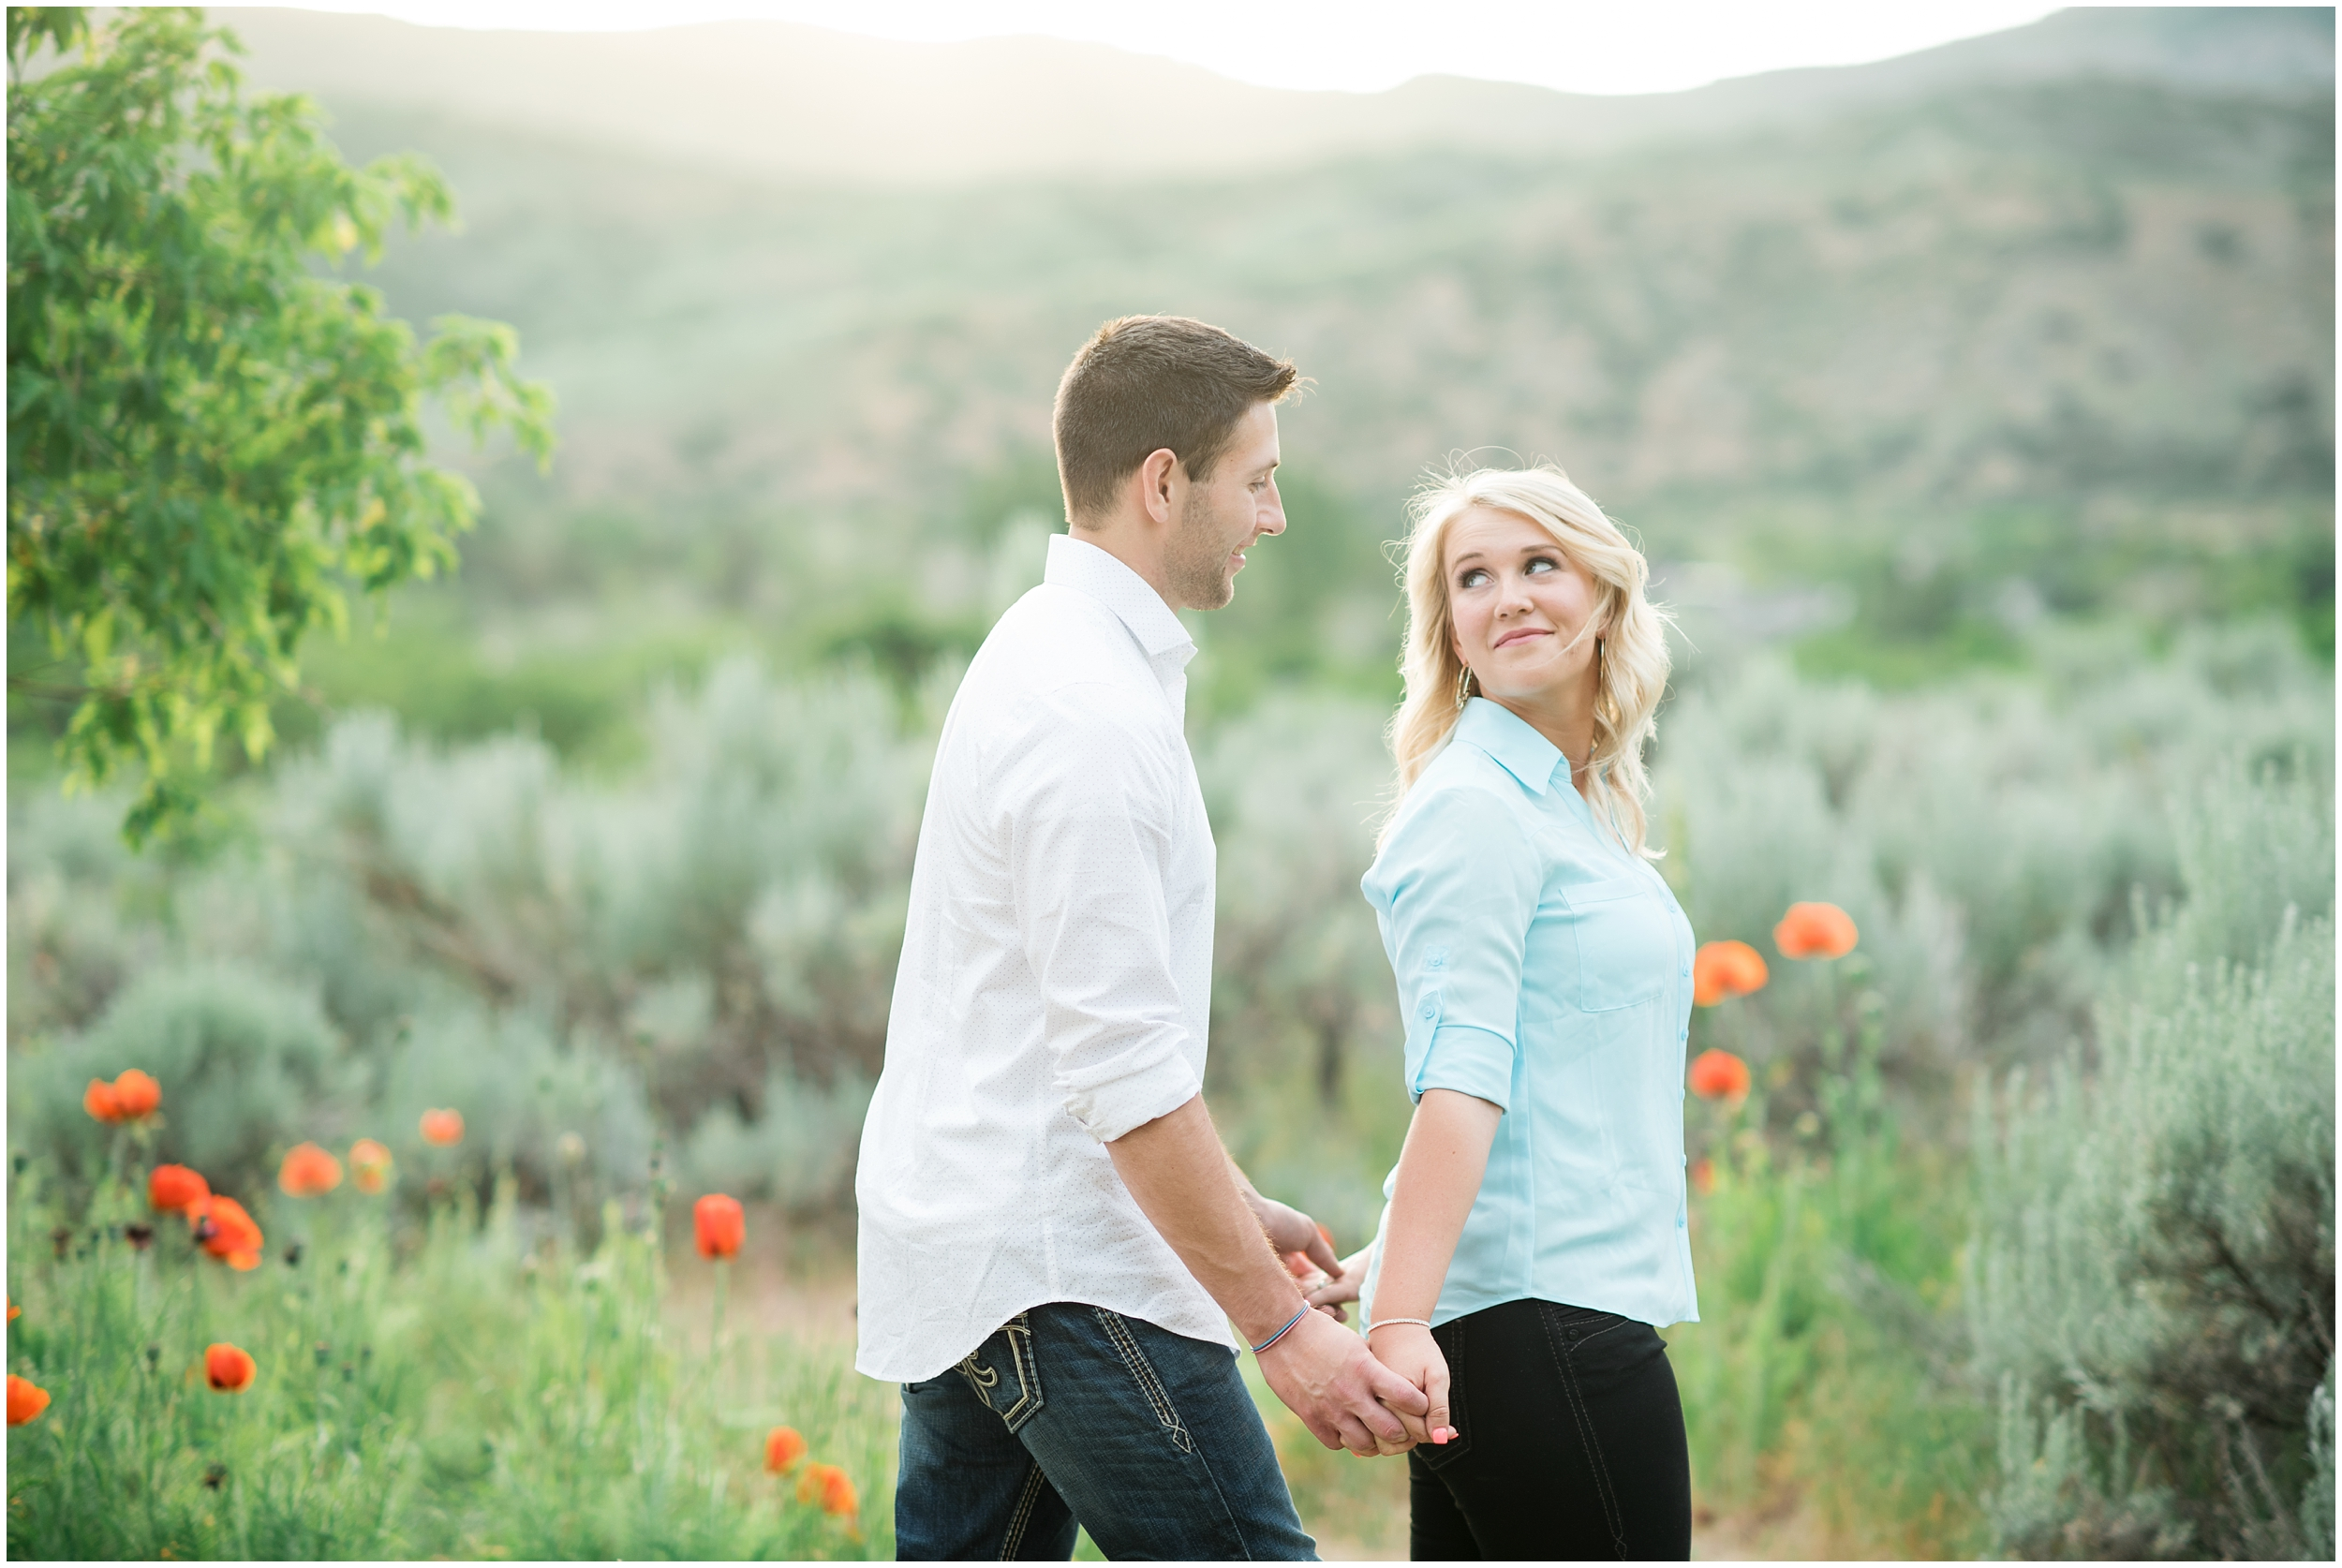 Poppies, fields engagements, black dress engagements, Utah mountains, mountain engagements, Utah wedding photographers, Utah wedding photographer, Utah wedding photography, Utah county wedding photography, Utah county wedding photographer, salt lake city photographers, salt lake city wedding photography, salt lake photographers, salt lake city photographers, photographers in Utah, Utah photography, photography Utah, photographer Utah, Kristina Curtis photography, Kristina Curtis Photographer, www.kristinacurtisphotography.com